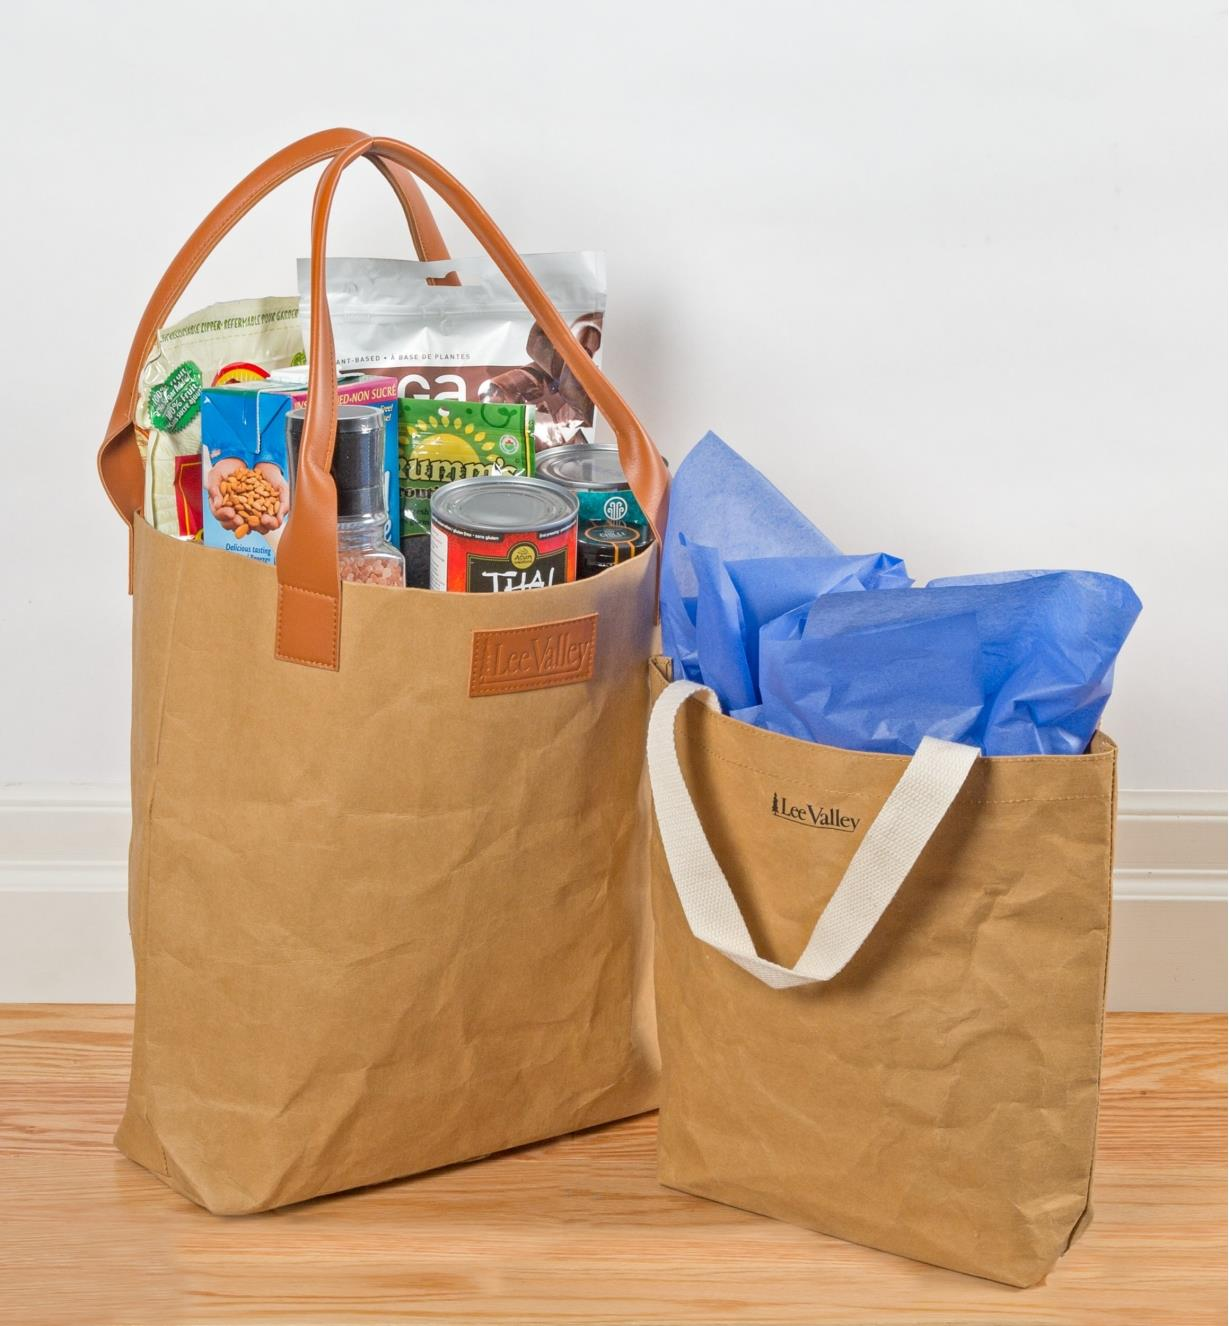 Two Tree Leather Tote Bags, one filled with groceries and the other used as a gift bag